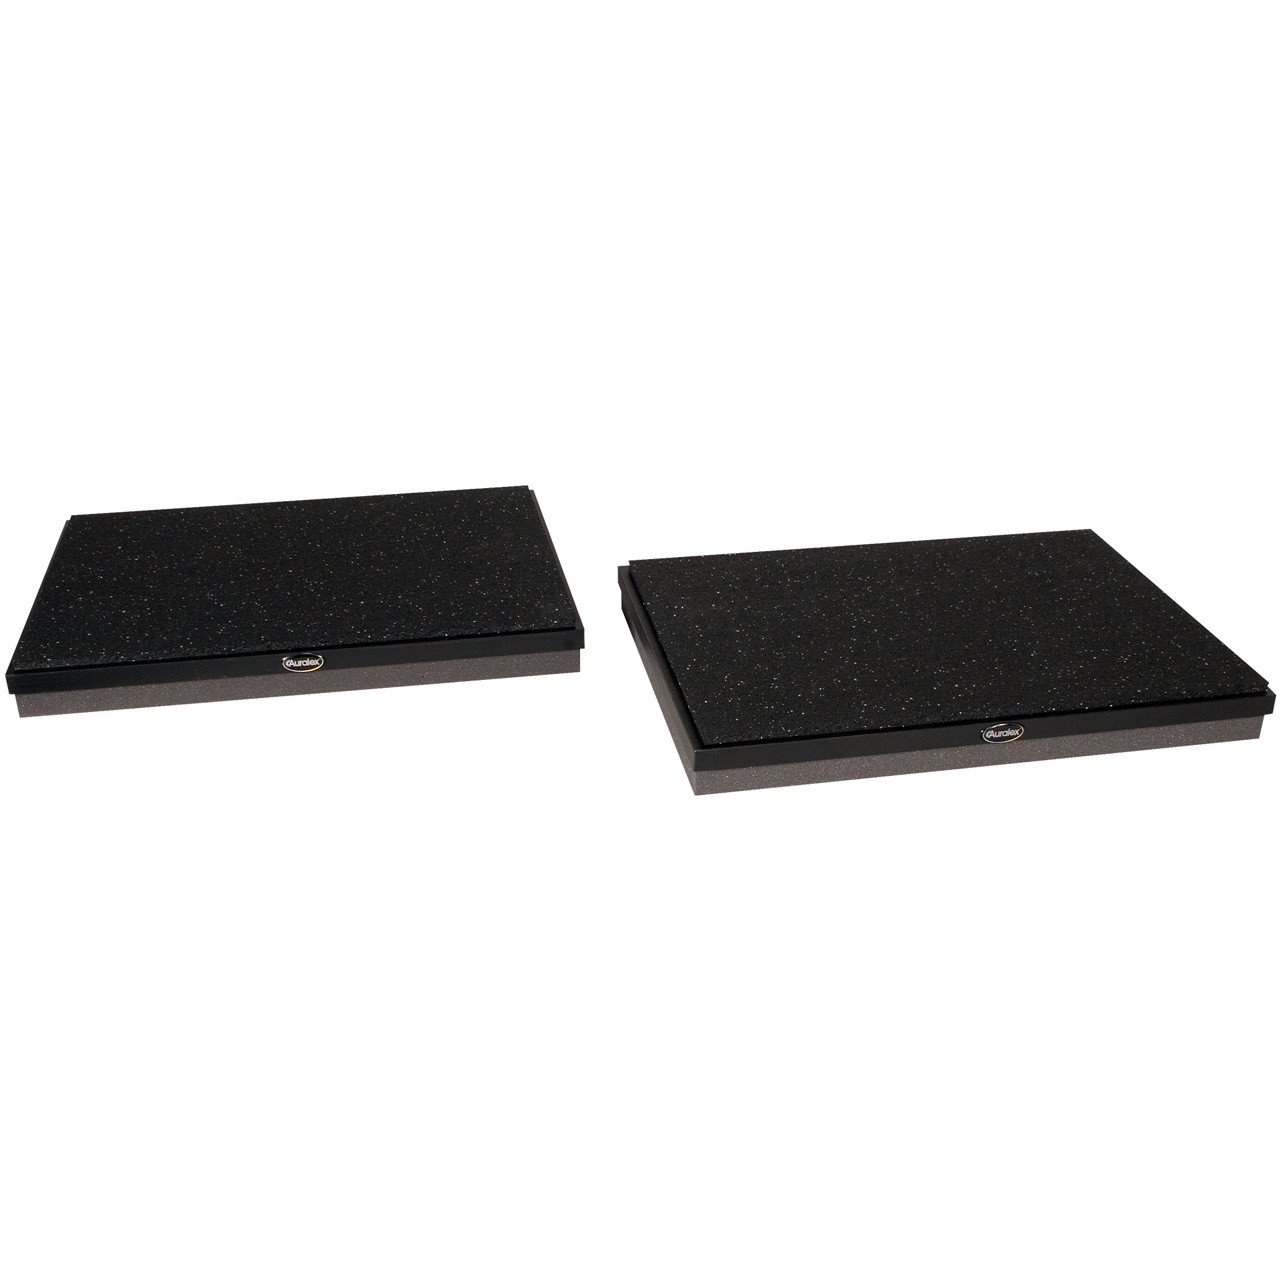 Monitor Isolation - Auralex ProPad-XL Pro Speaker Isolation Pads